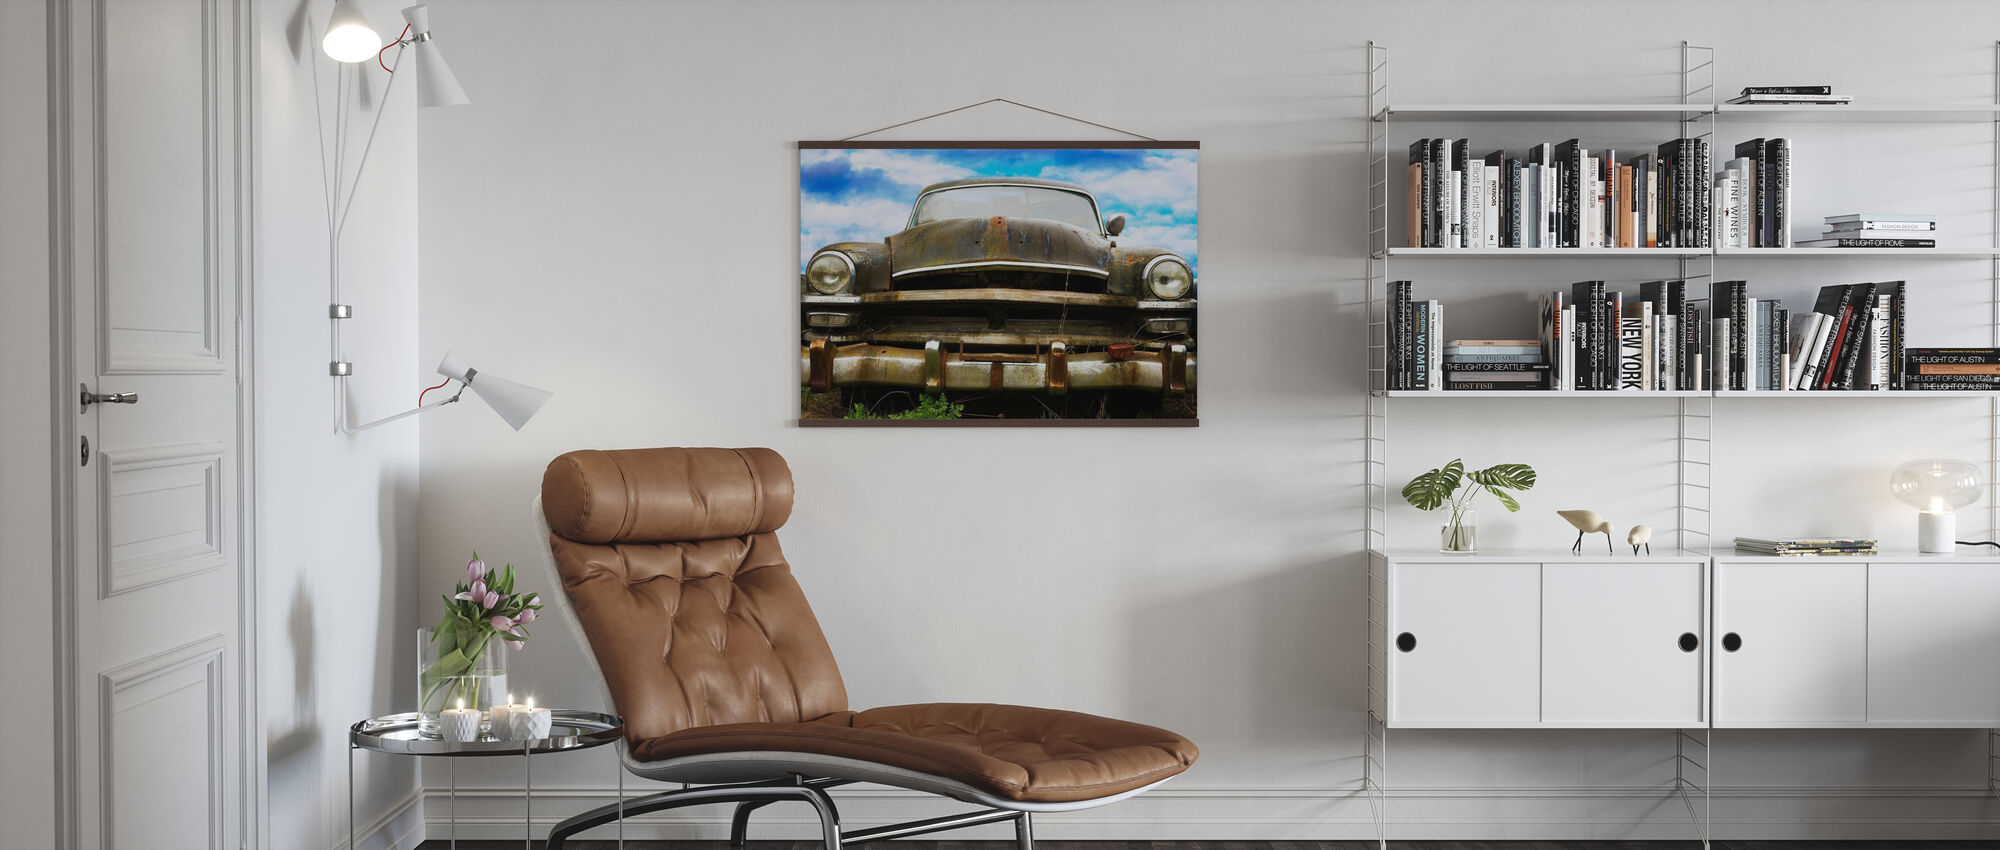 Rusty Old Car - Poster - Living Room